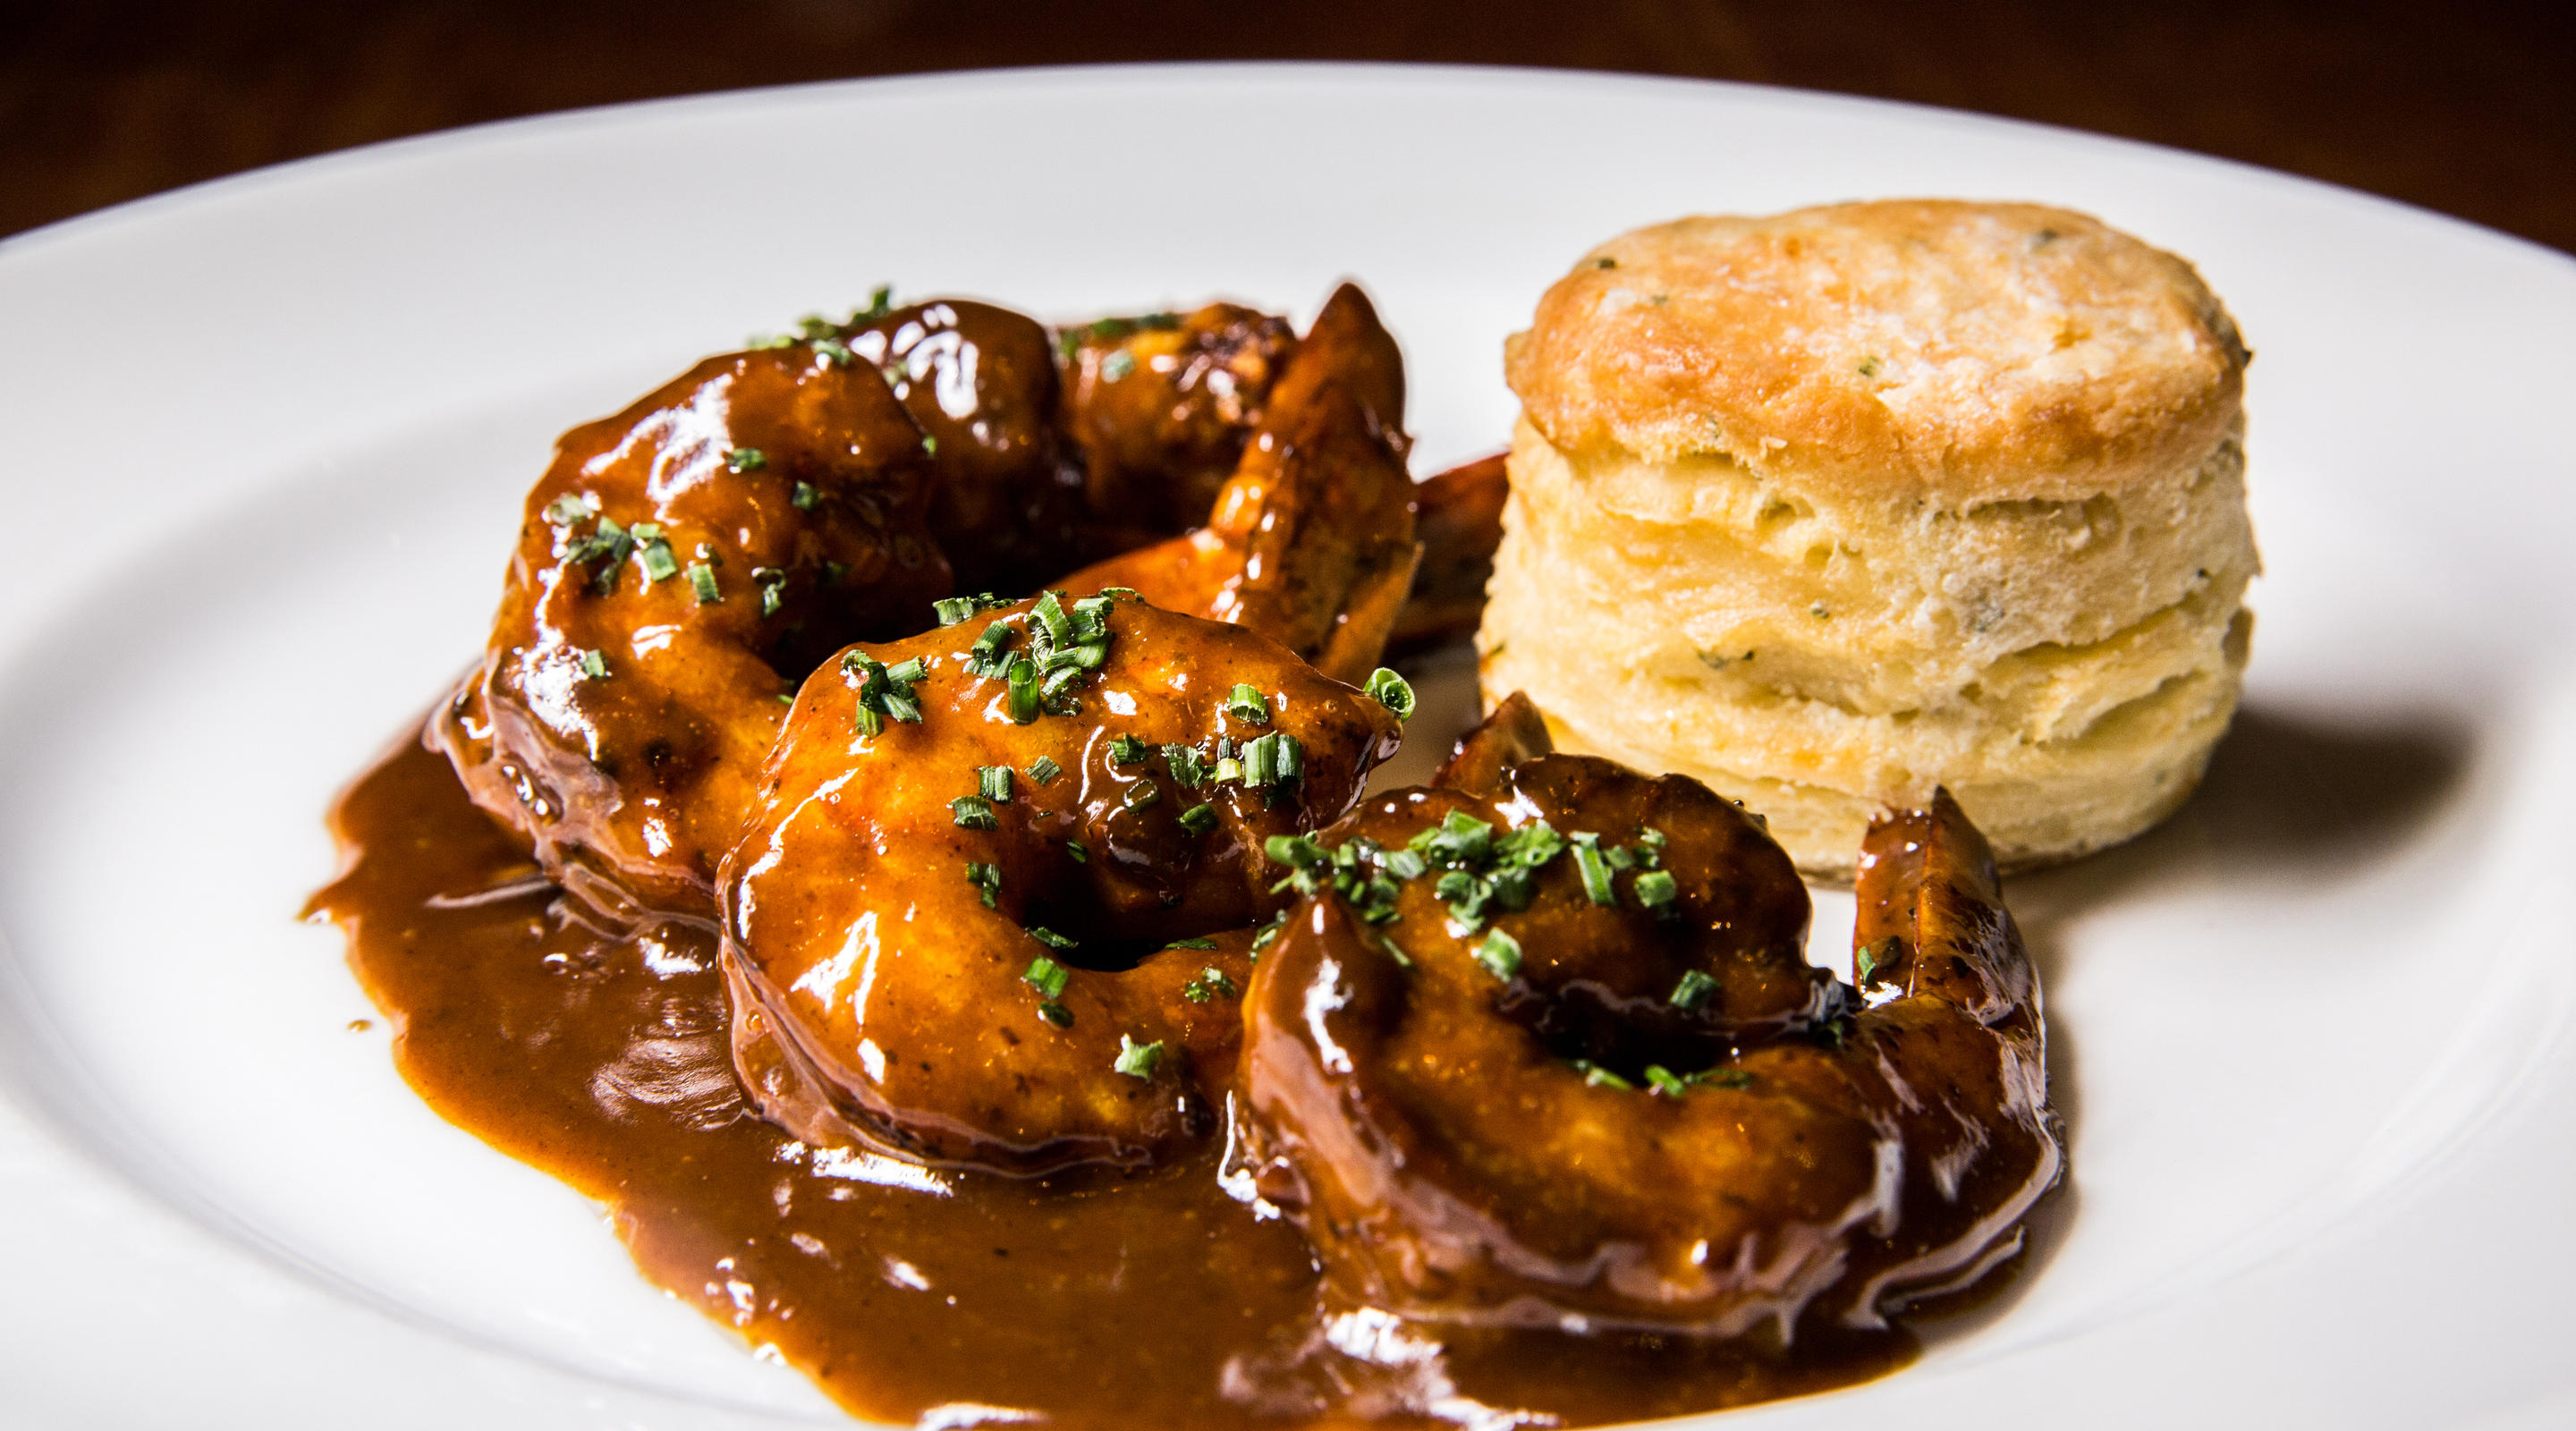 A plate of BBQ shrimp with a biscuit from Emeril's.